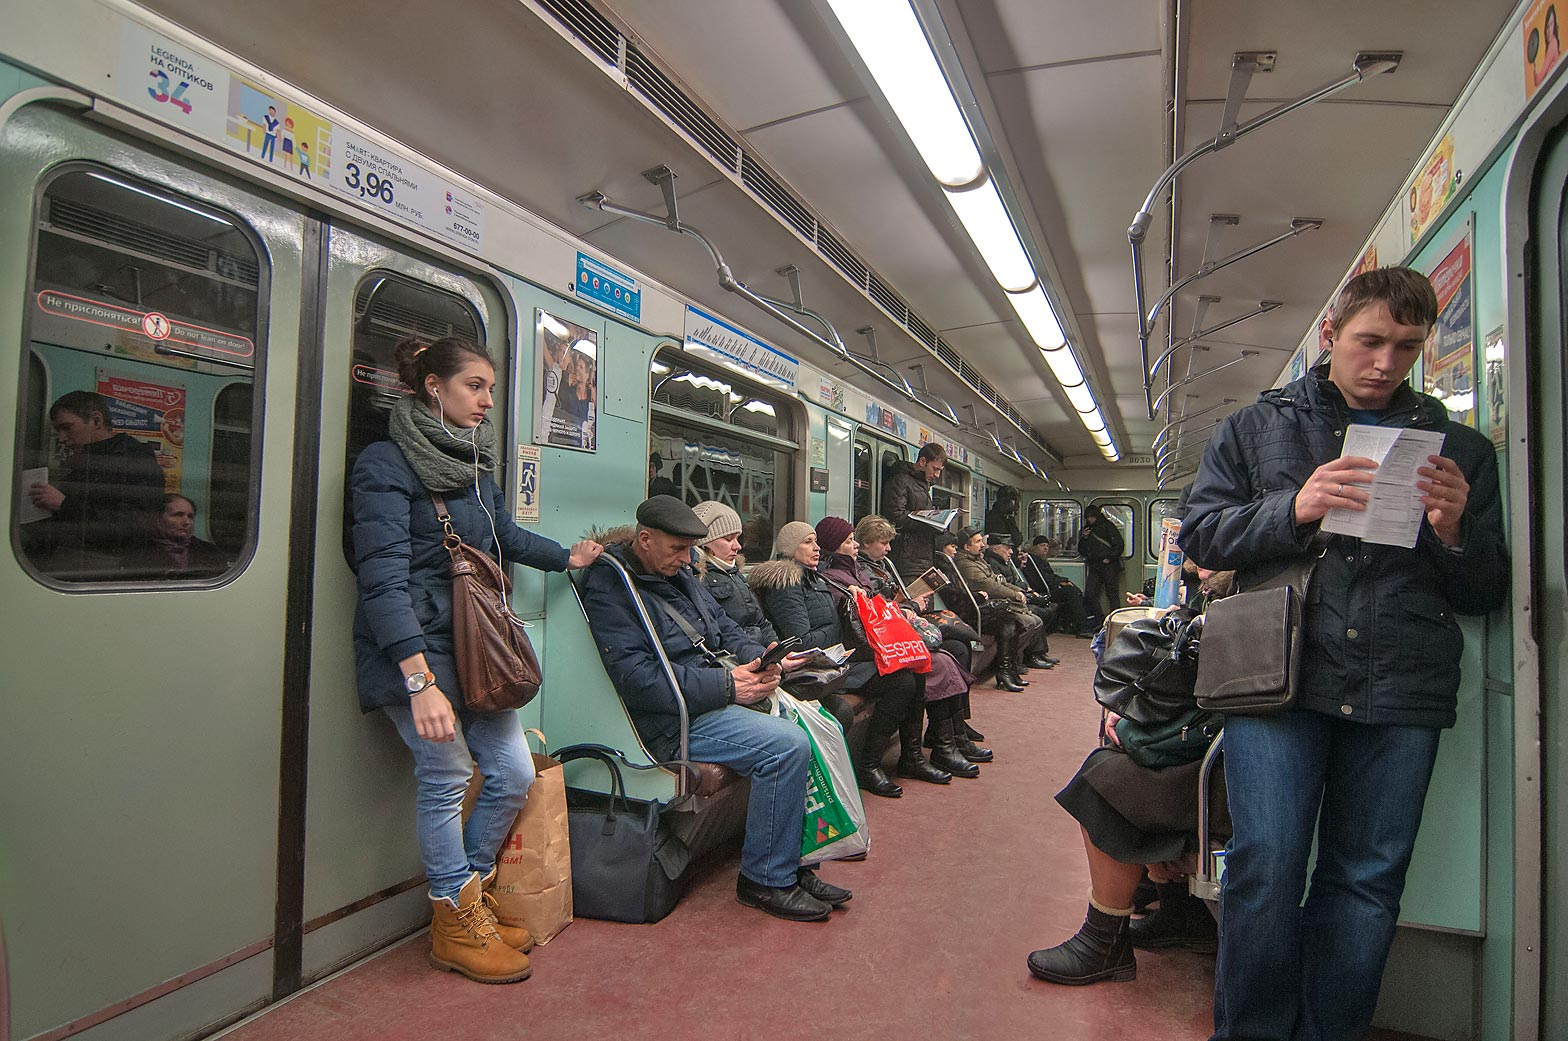 Passengers on Metro (subway) carriage. St.Petersburg, Russia